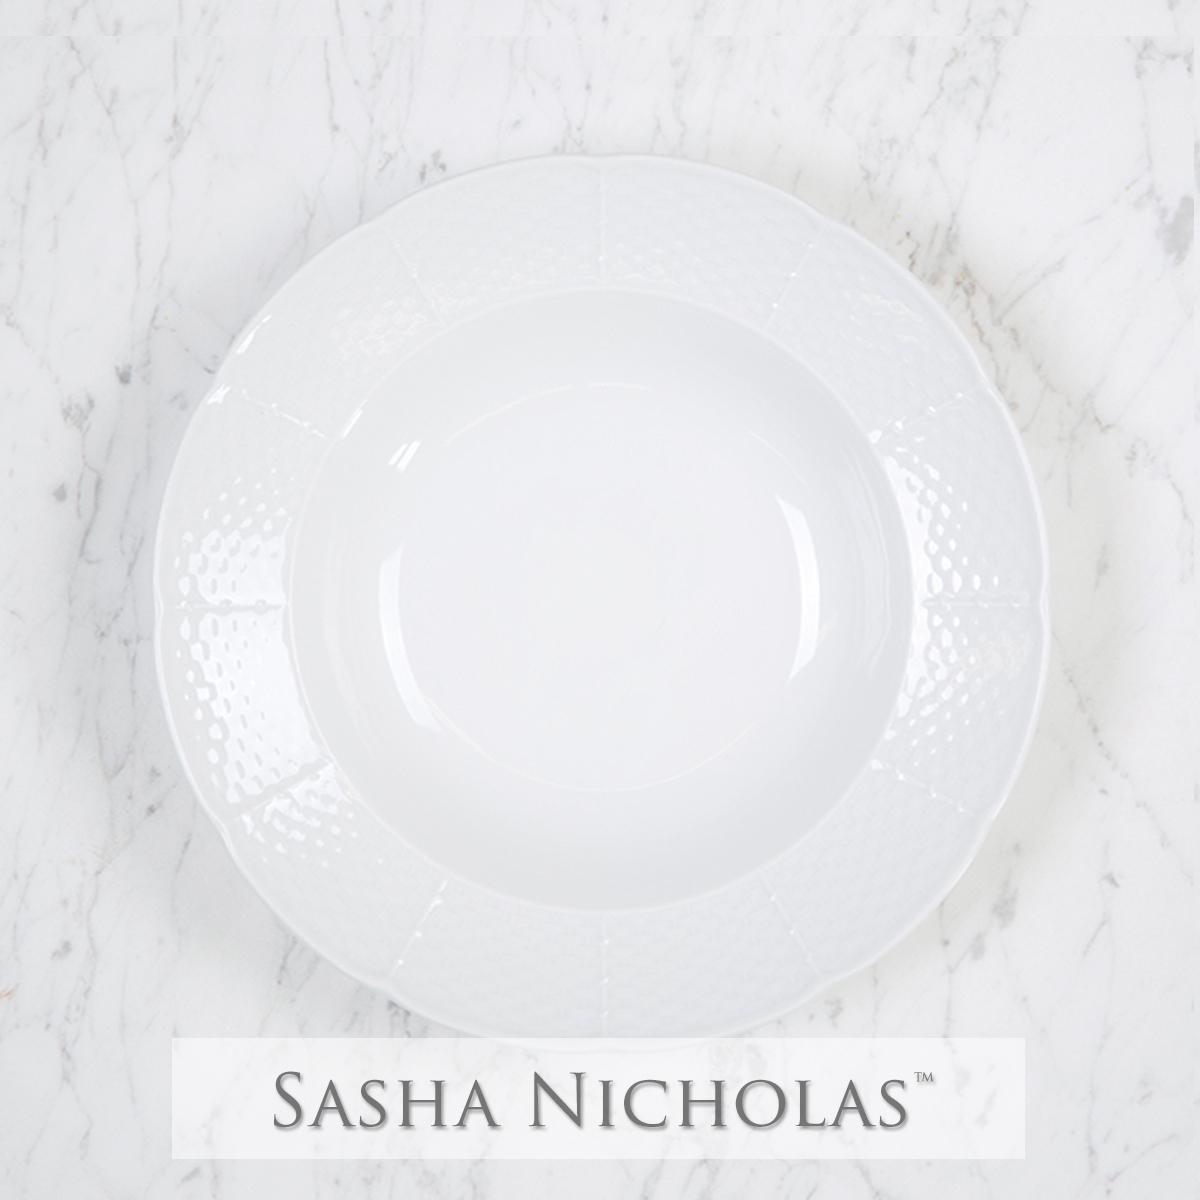 A beautiful addition to your dinnerware collection and to adorn your tablescapes with. It makes the perfect gift for your wedding registry. Choose from their signature font styles or use a custom monogram or crest of your choice! | Sasha Nicholas's white porcelain rim soup bowl